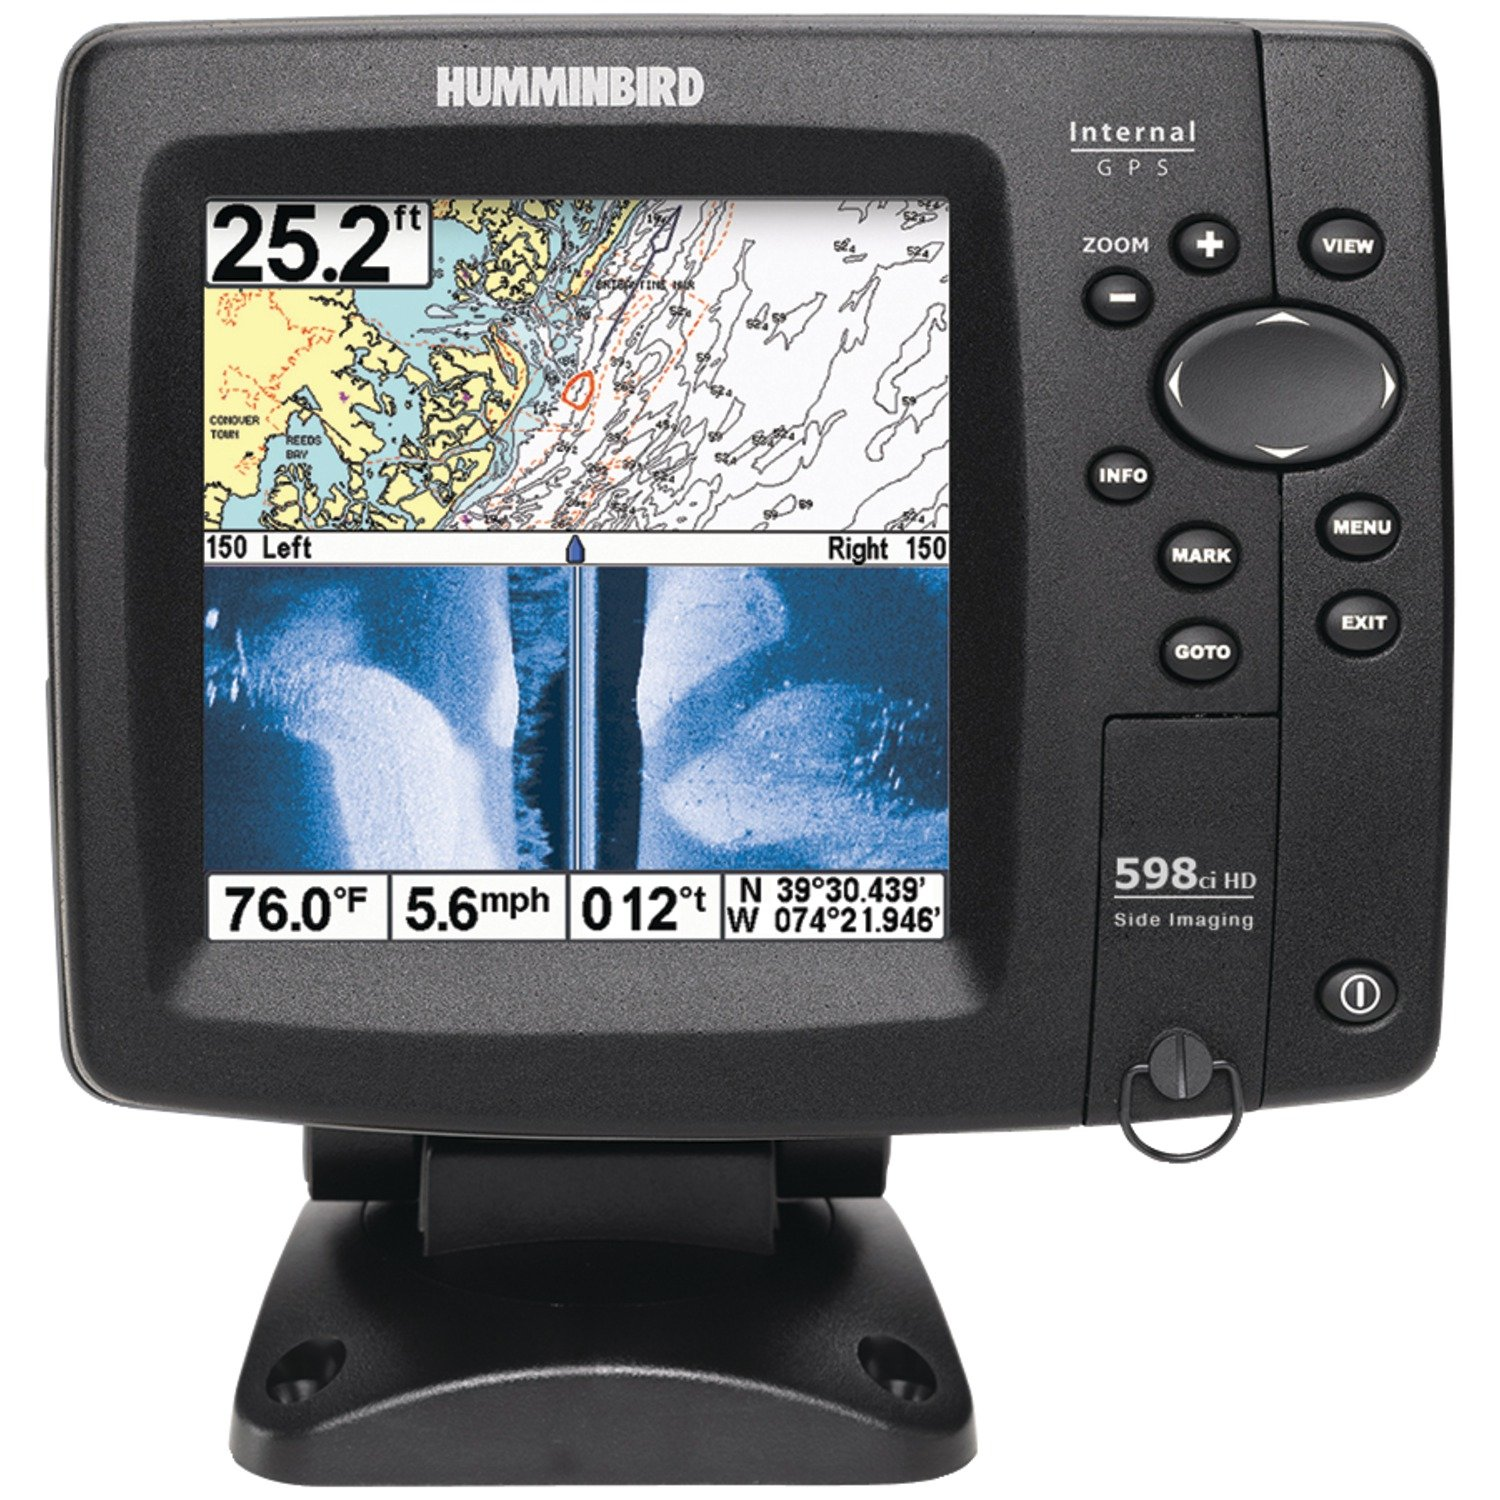 TUSITA Case for Lowrance Hook 2 4 4X Fishfinder GPS Accessories Silicone Protective Cover